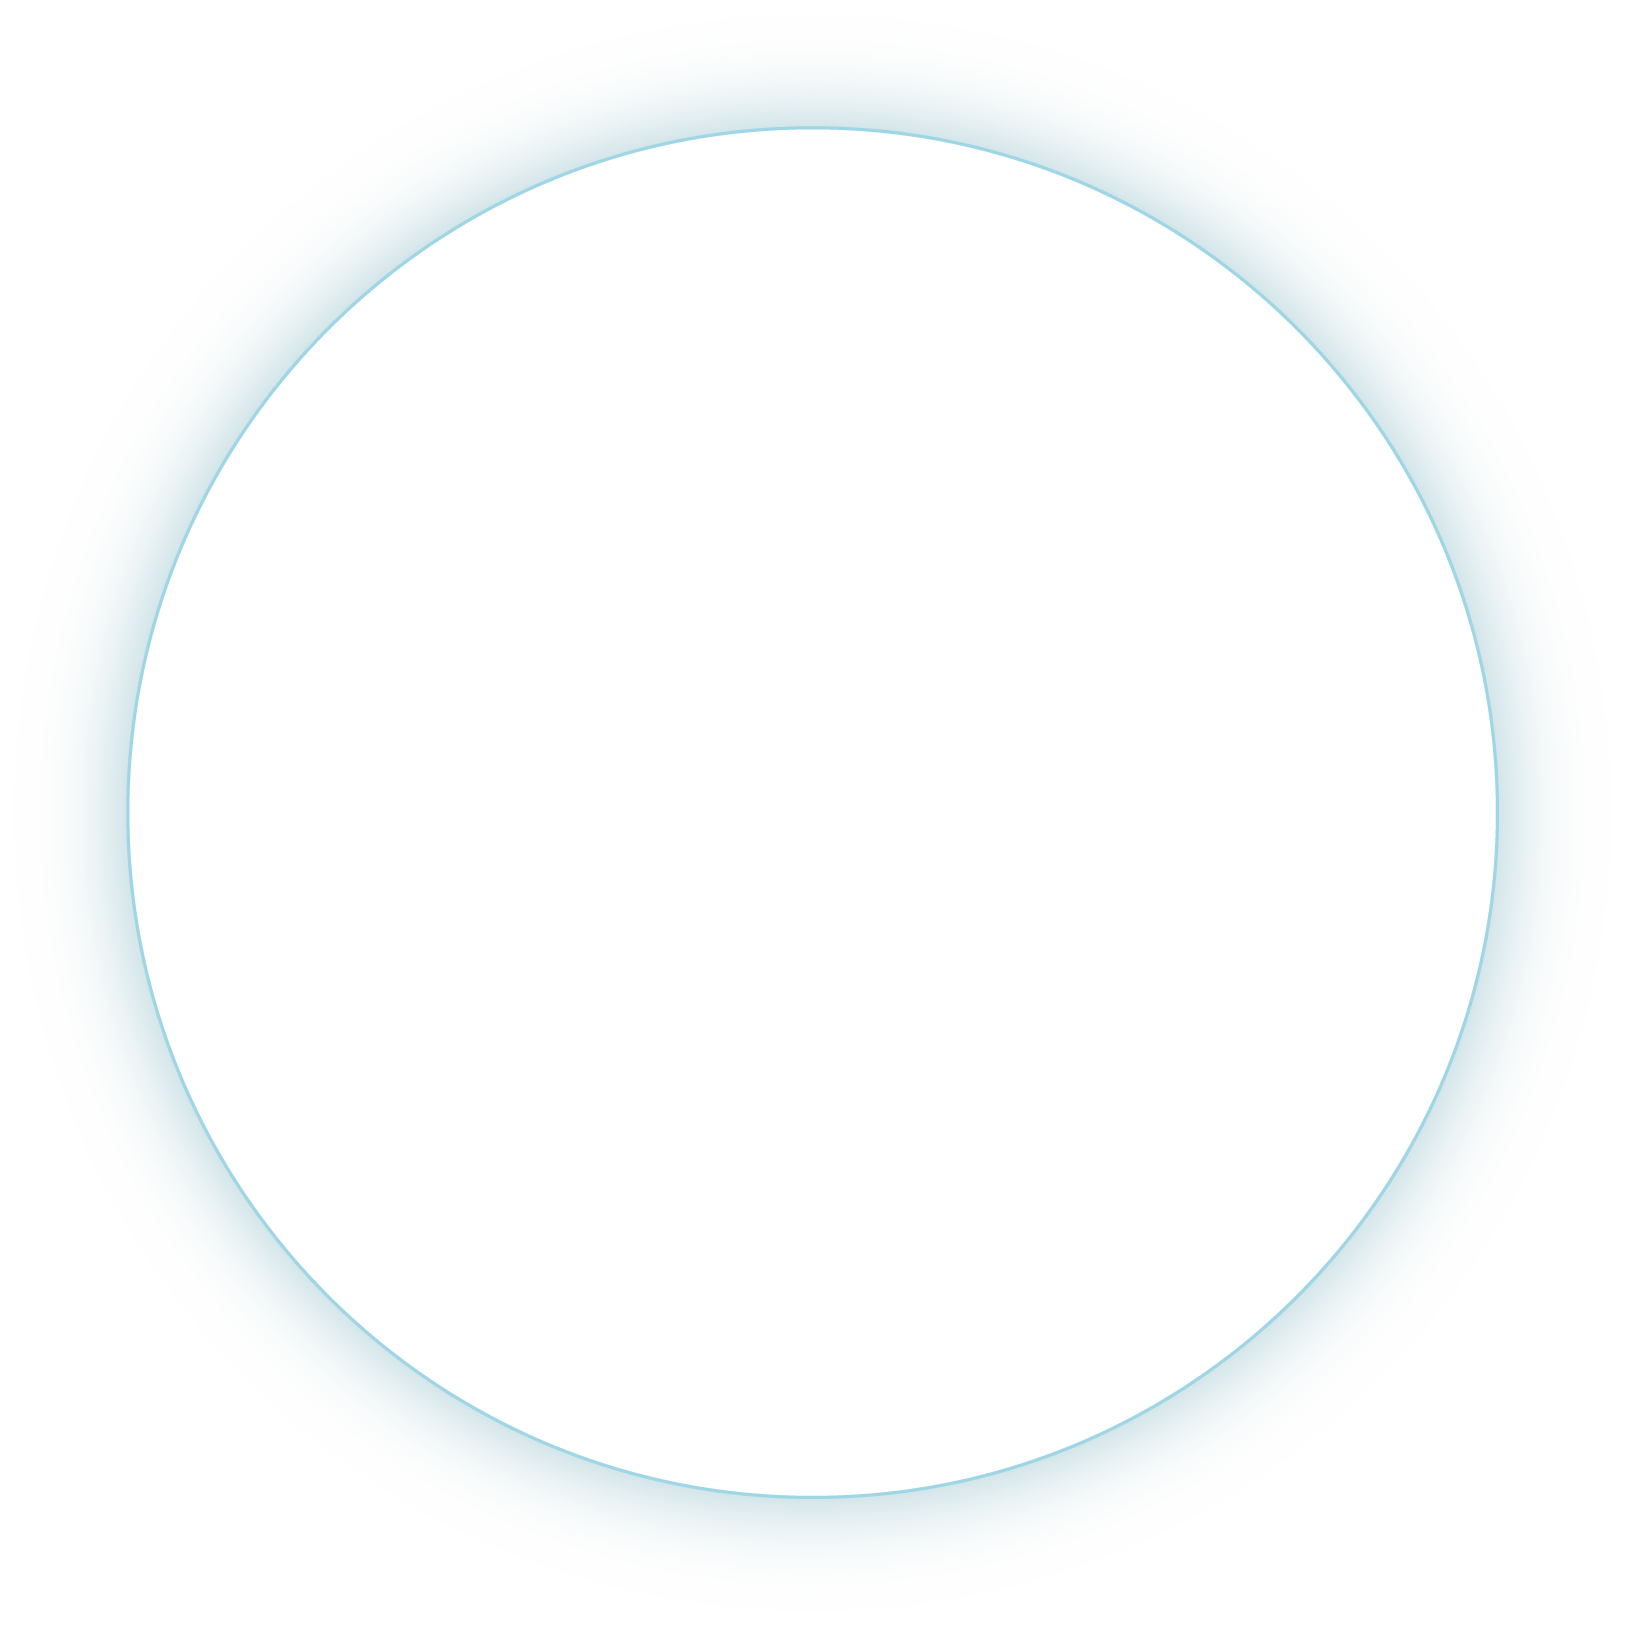 Asset-174Blue-circle.png